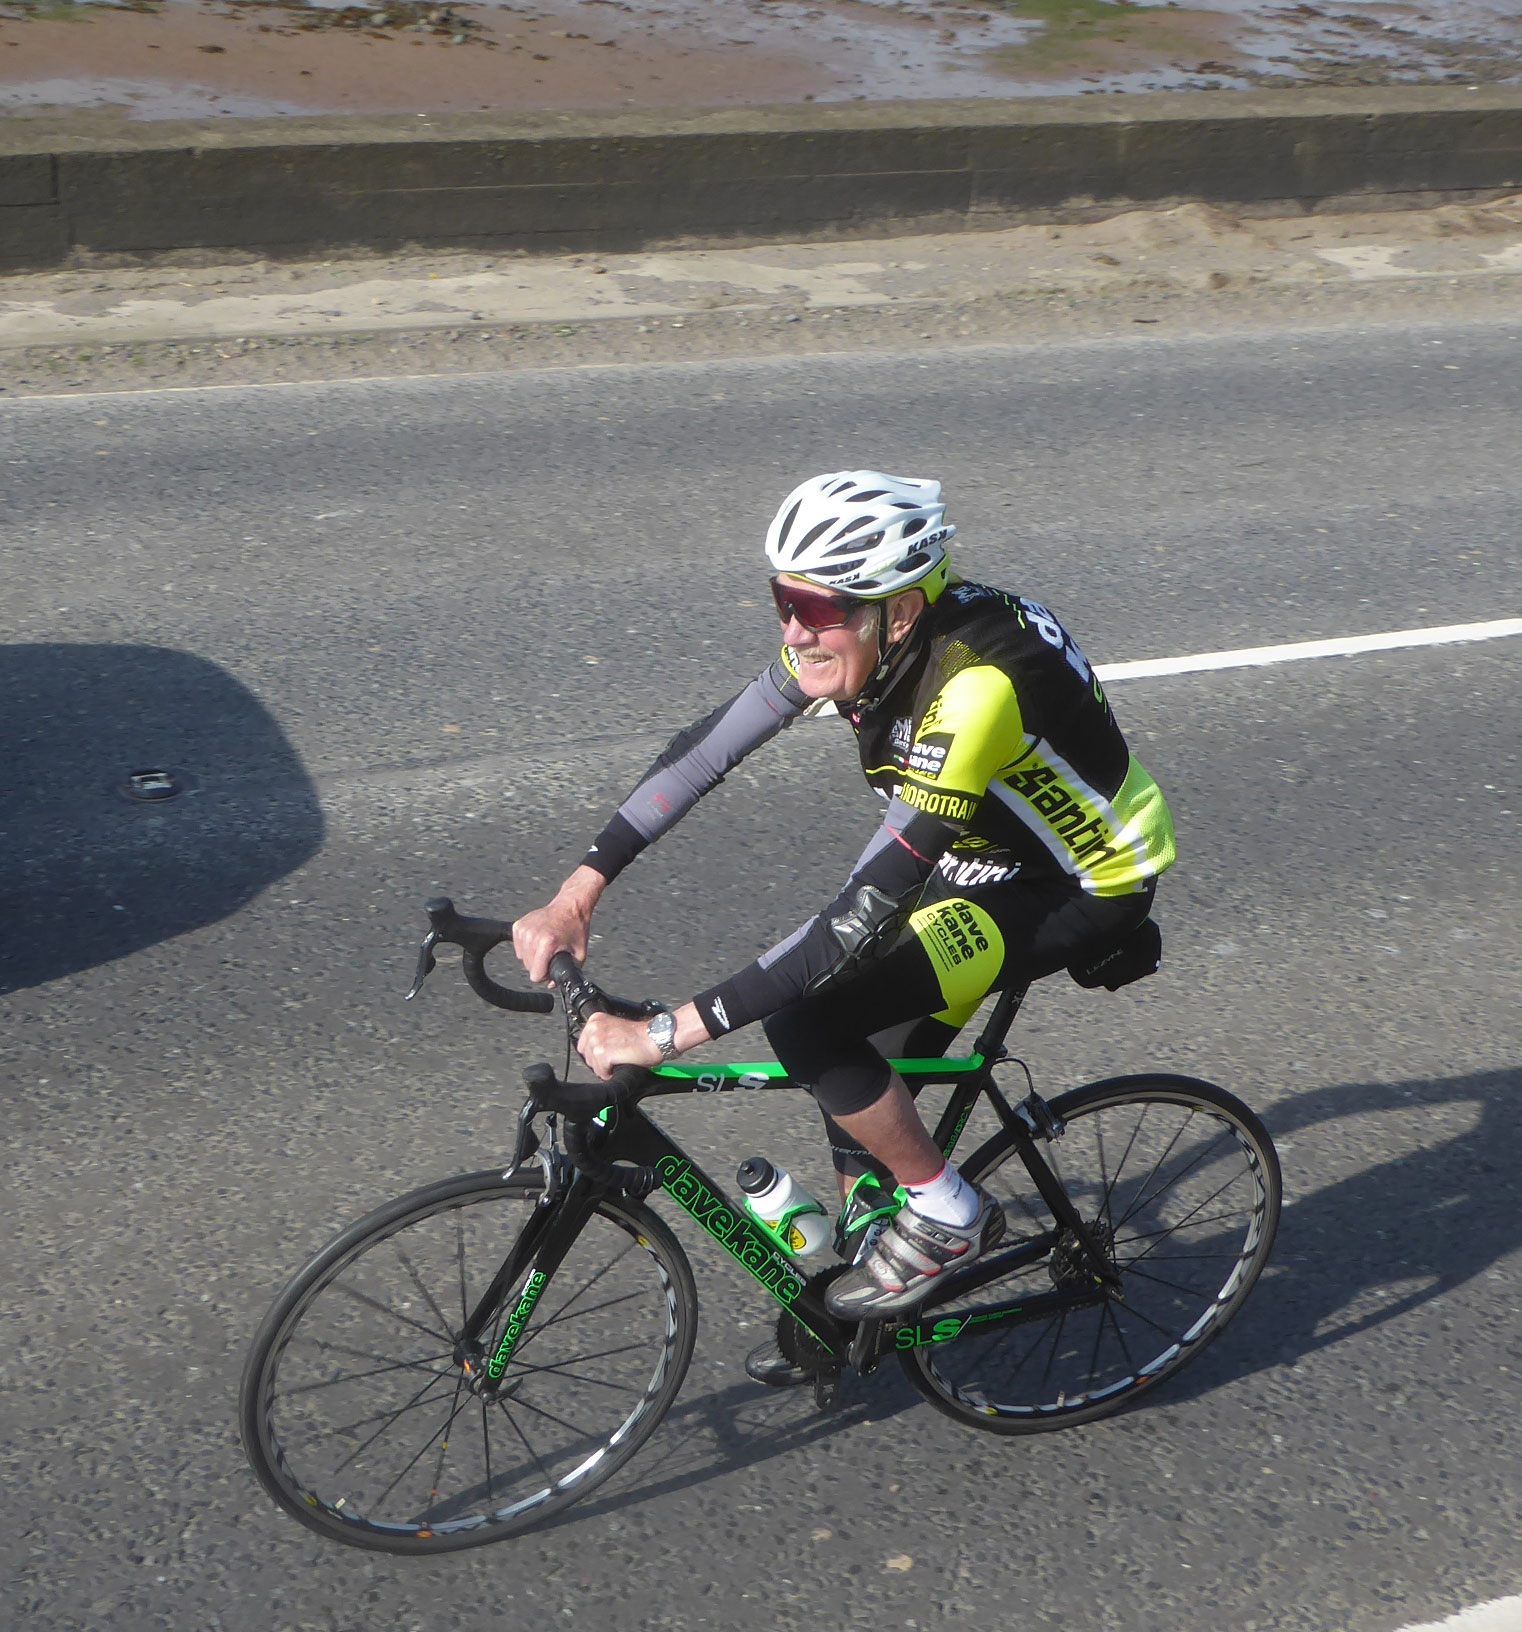 And finally - great to see Dave Kane still getting in the miles today